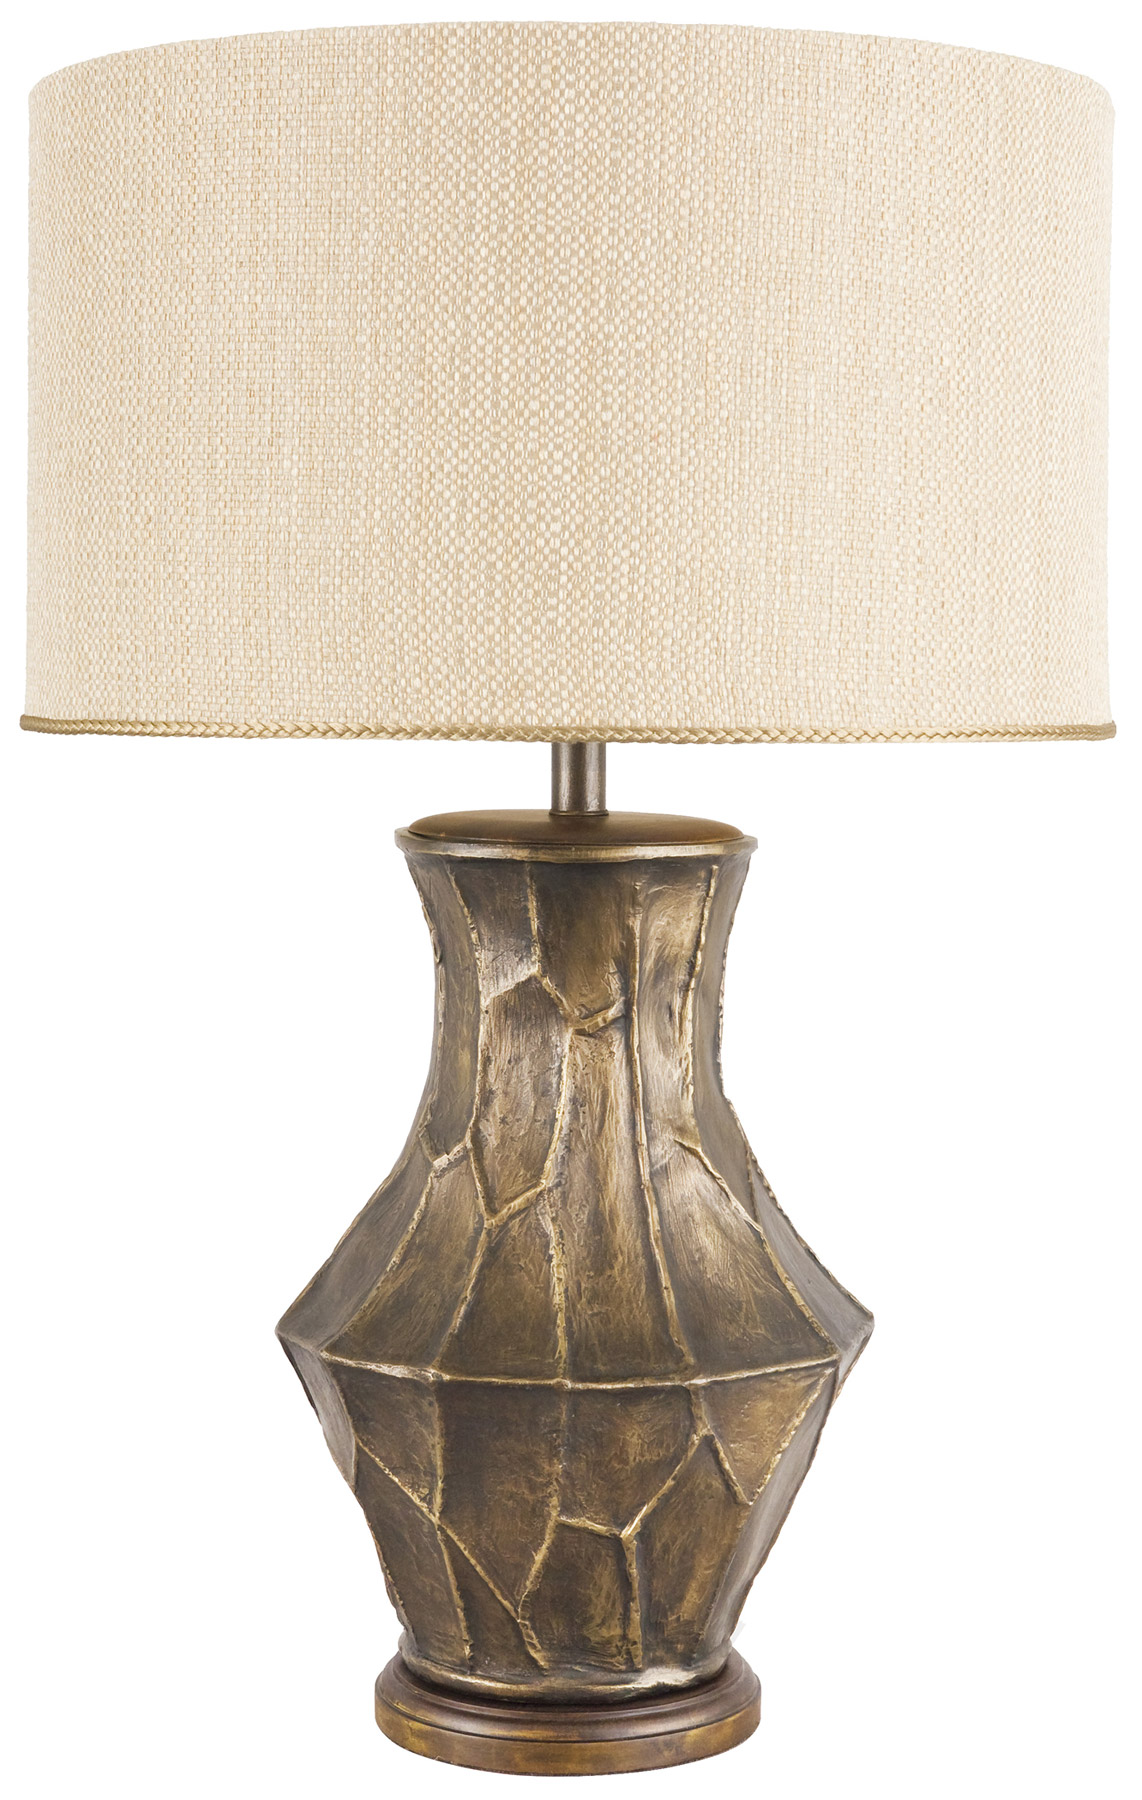 Frederick cooper table lamps lamps beautiful frederick cooper 65127 fractura bronze table lamp geotapseo Image collections